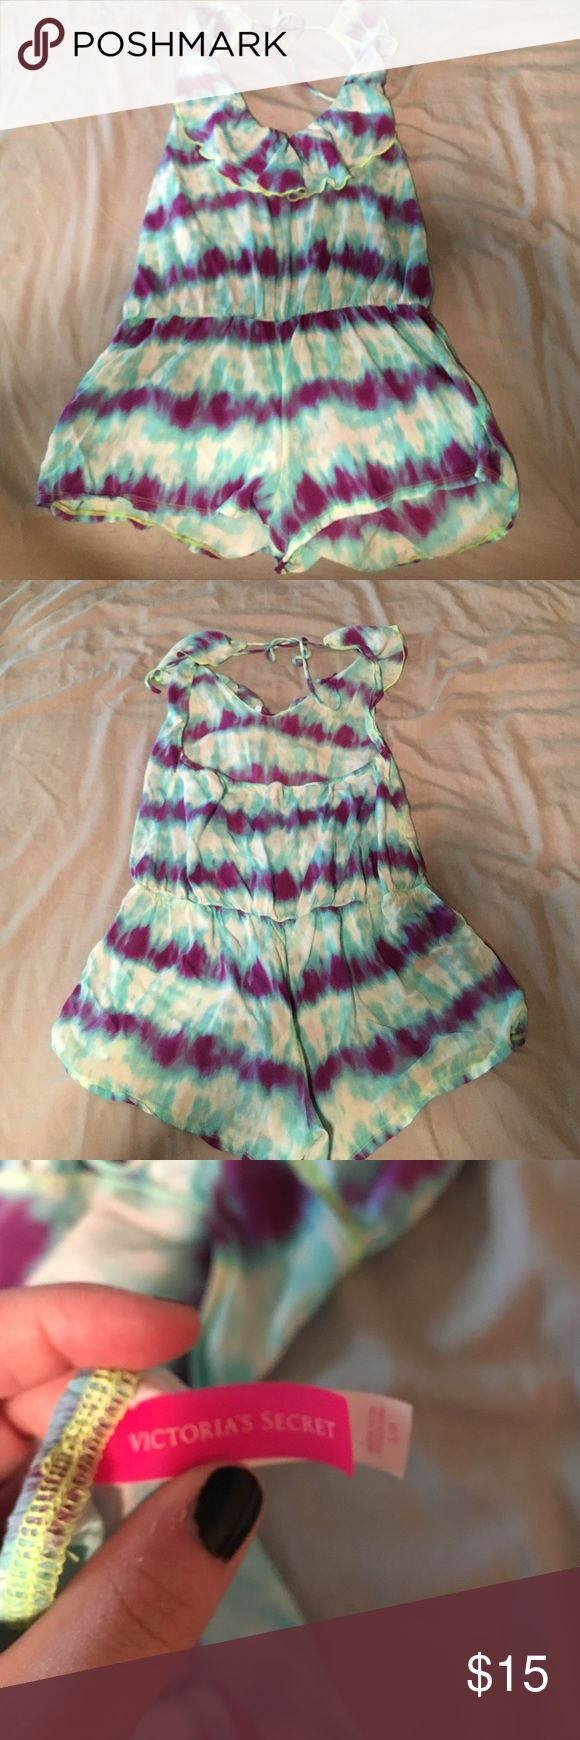 PINK cover up romper PINK swimsuit cover up romper. Purple white green and blue tie die romper with halter string tie. There's a cut out in the back that stops short of the bra line. Never loved this but you might! PINK Victoria's Secret Swim Coverups